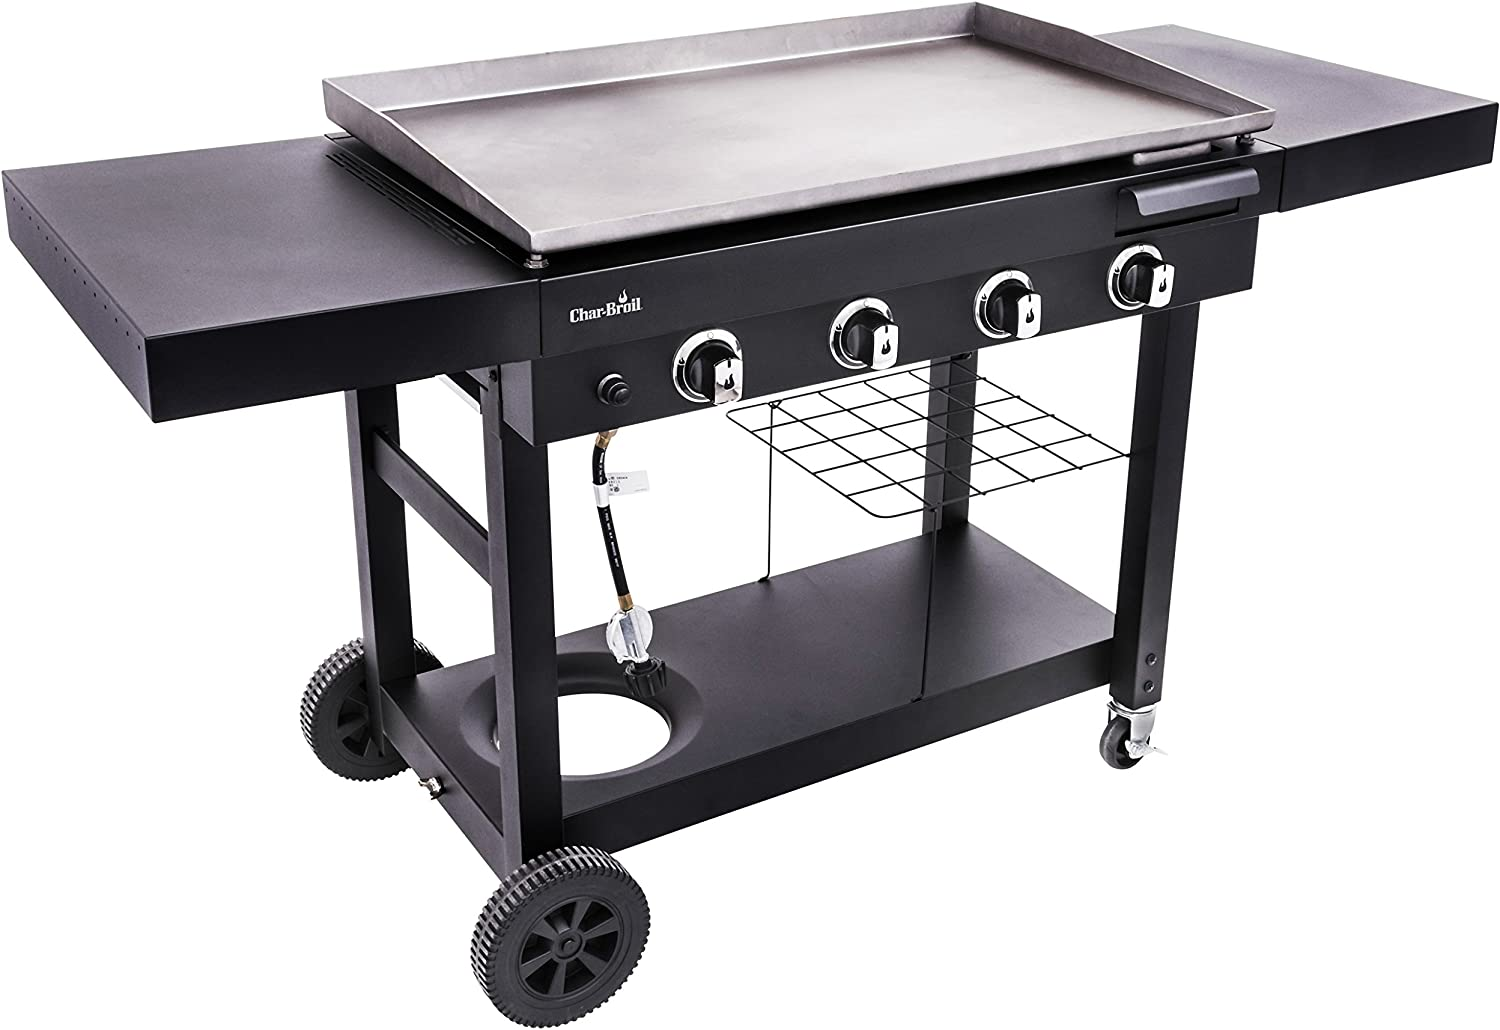 Char-Broil 18952074 - 4-Burner Liquid Propane Gas Griddle